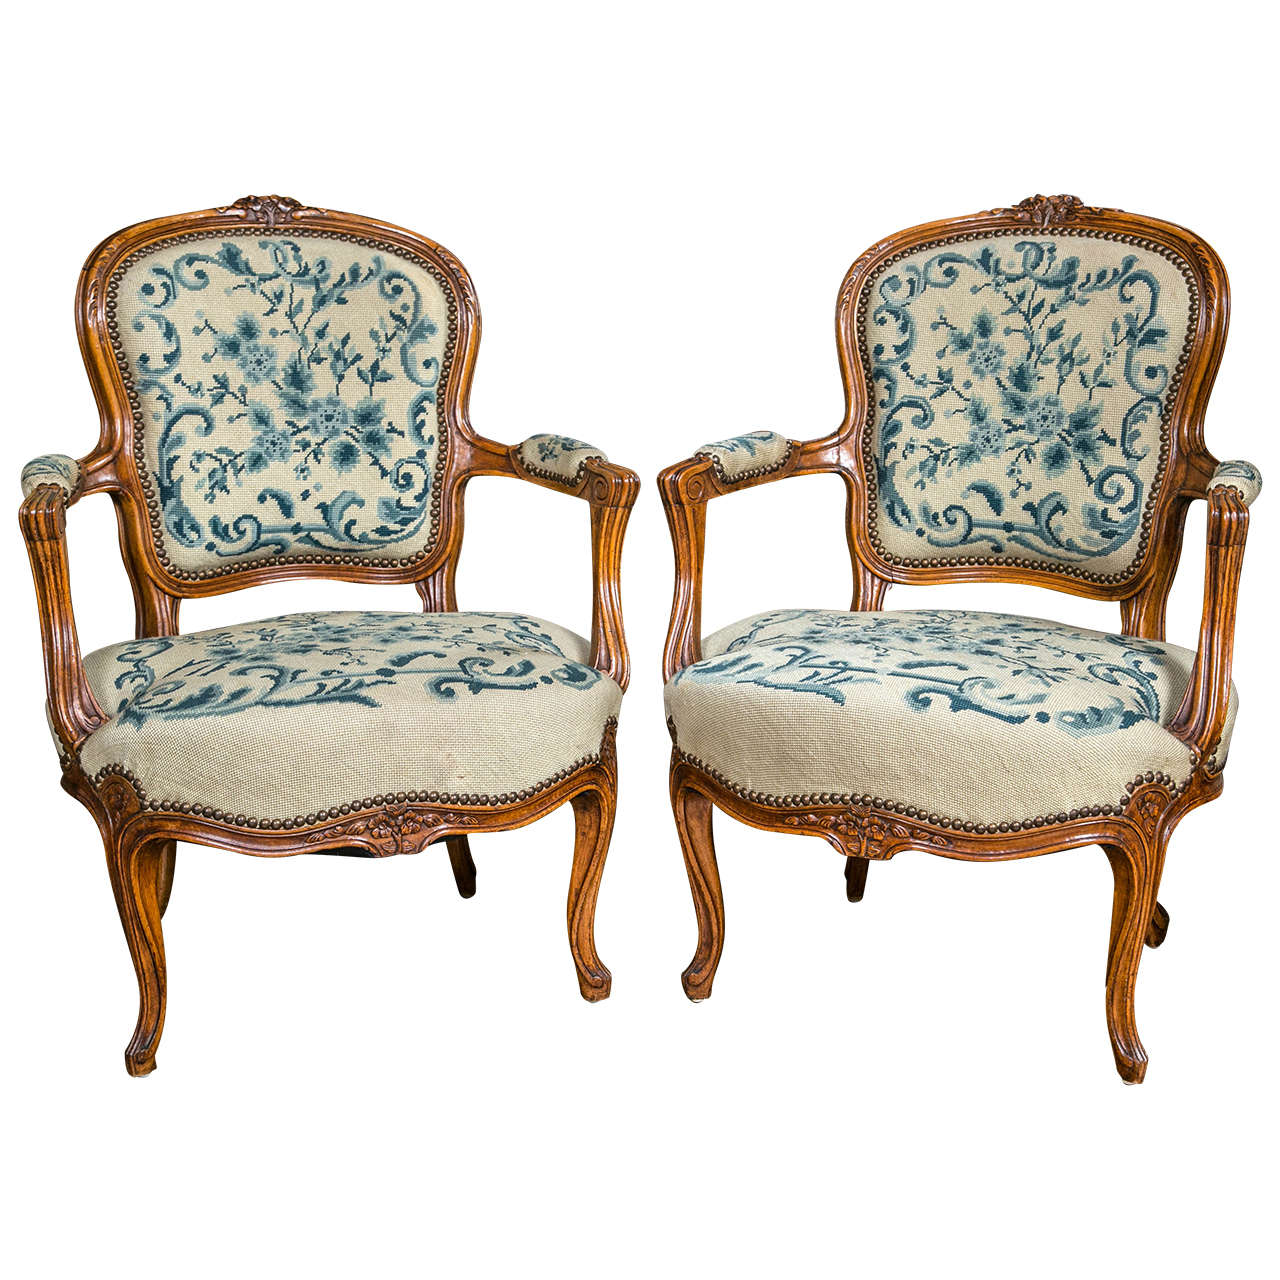 Fauteuils Style Louis Xv Pair Of Louis Xv Style Fauteuil Chairs